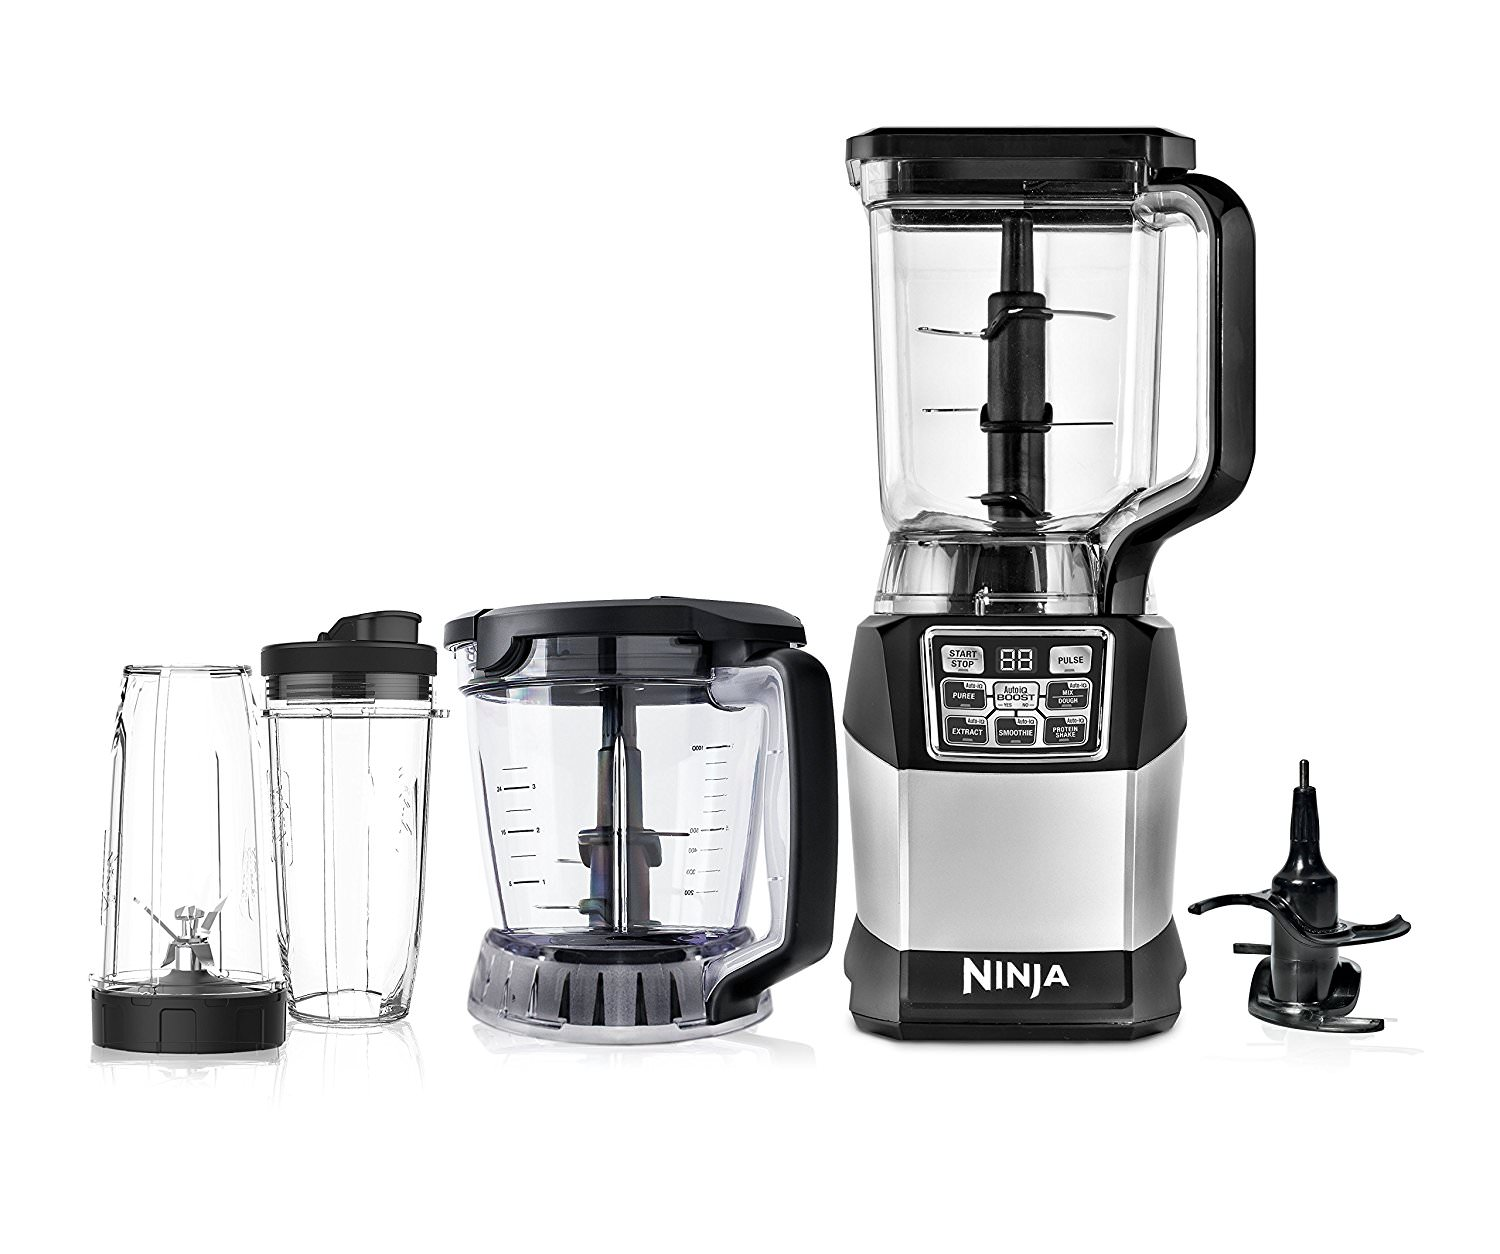 Ninja Kitchen System with Auto-iQ Boost - Walmart.com